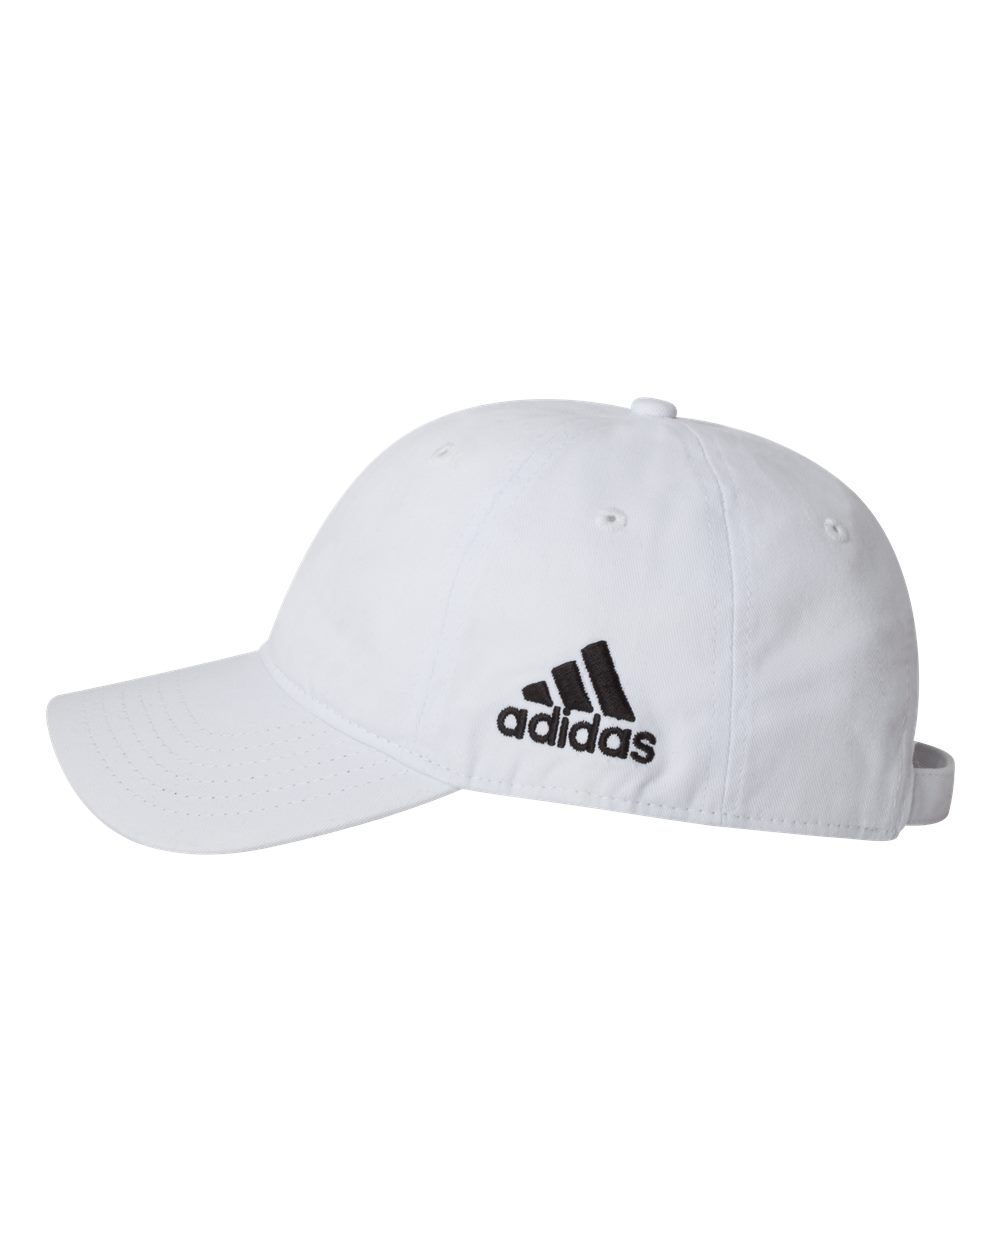 ADIDAS CORE PERFORMANCE RELAXED CAP